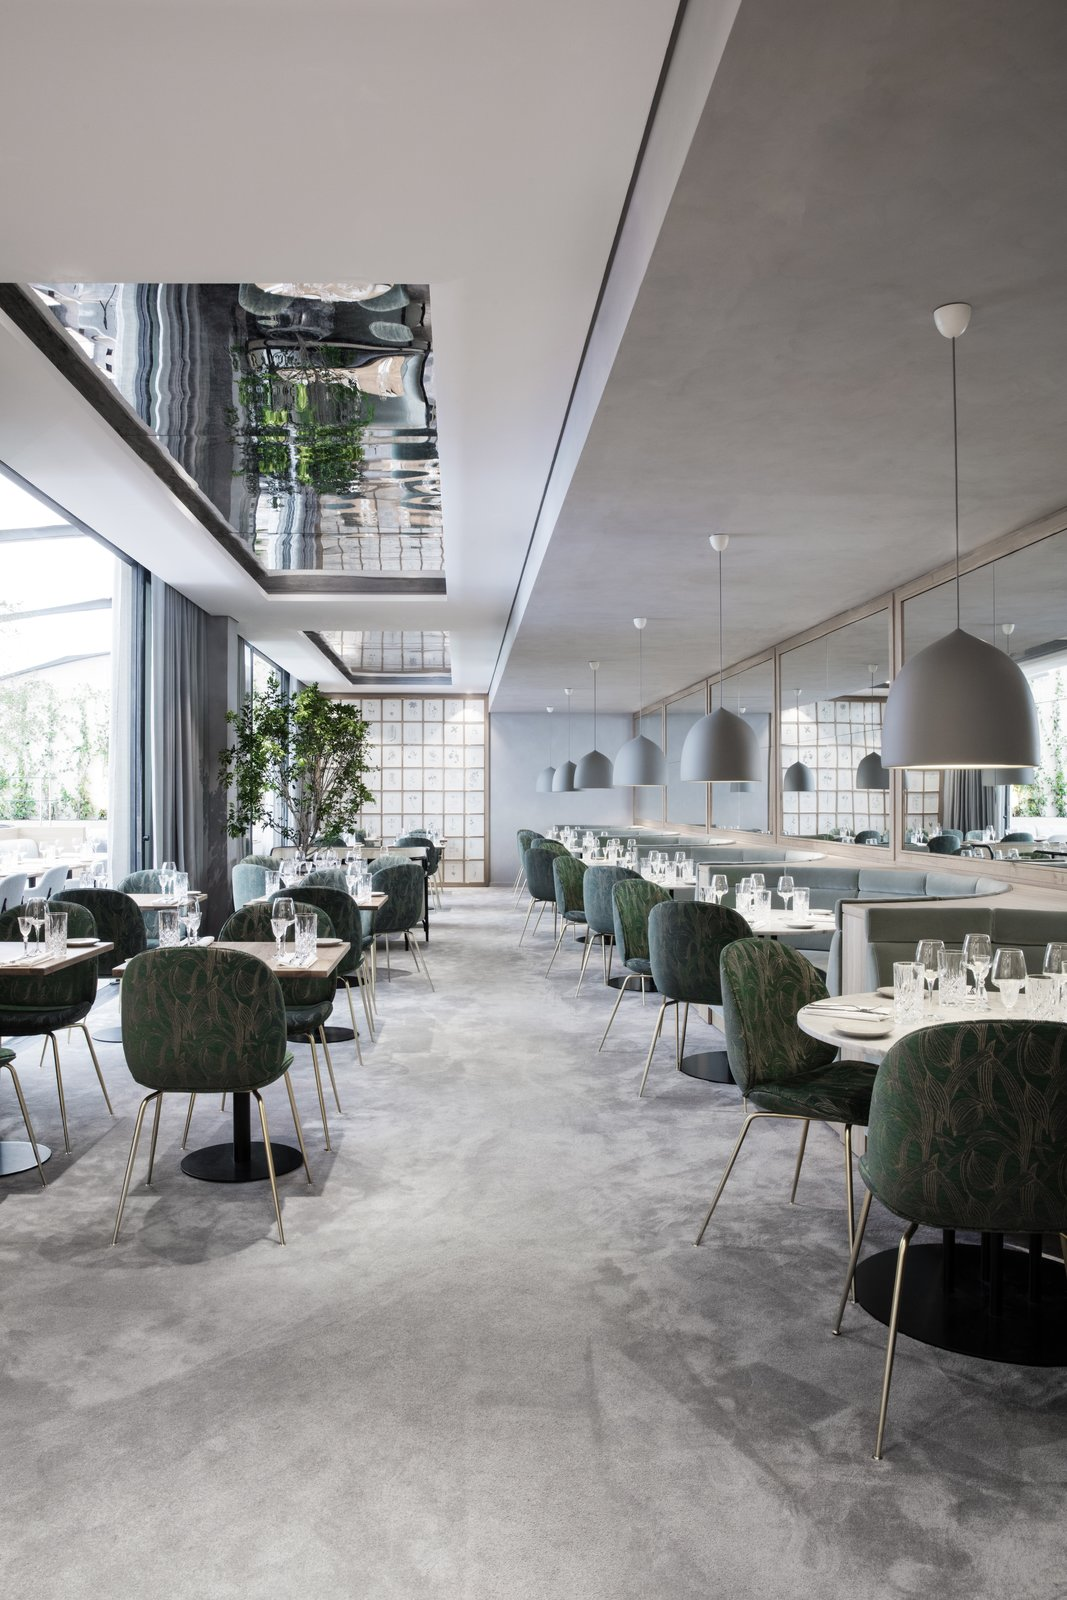 Photo 1 of 10 in The Revived Maison du Danemark Brings Two New Danish Restaurants to Paris